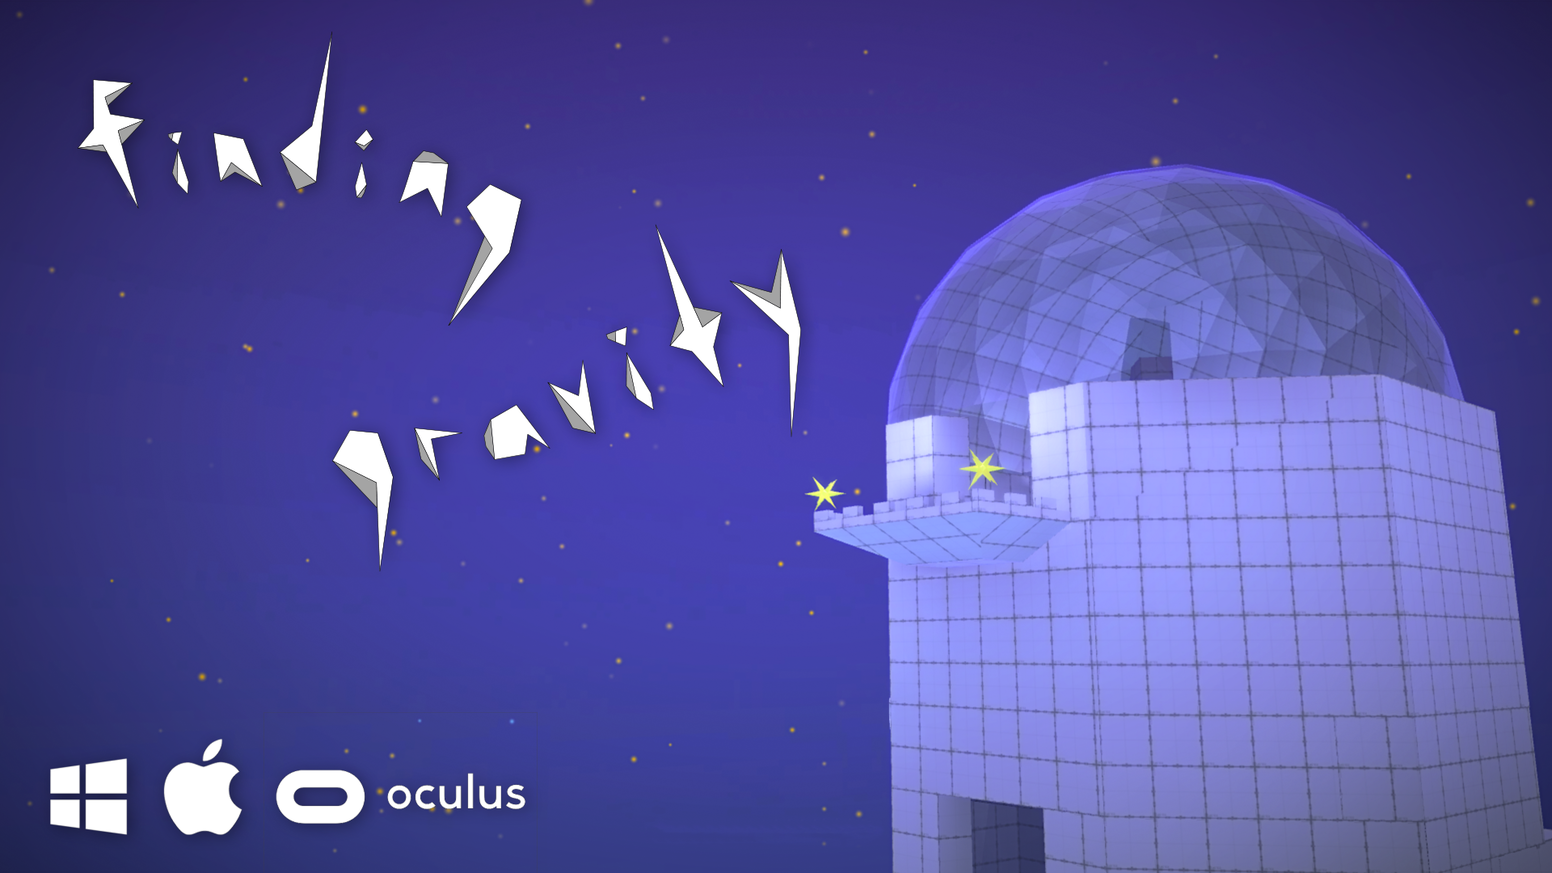 Finding Gravity - a cooperative puzzle game for PC/Mac/VR by